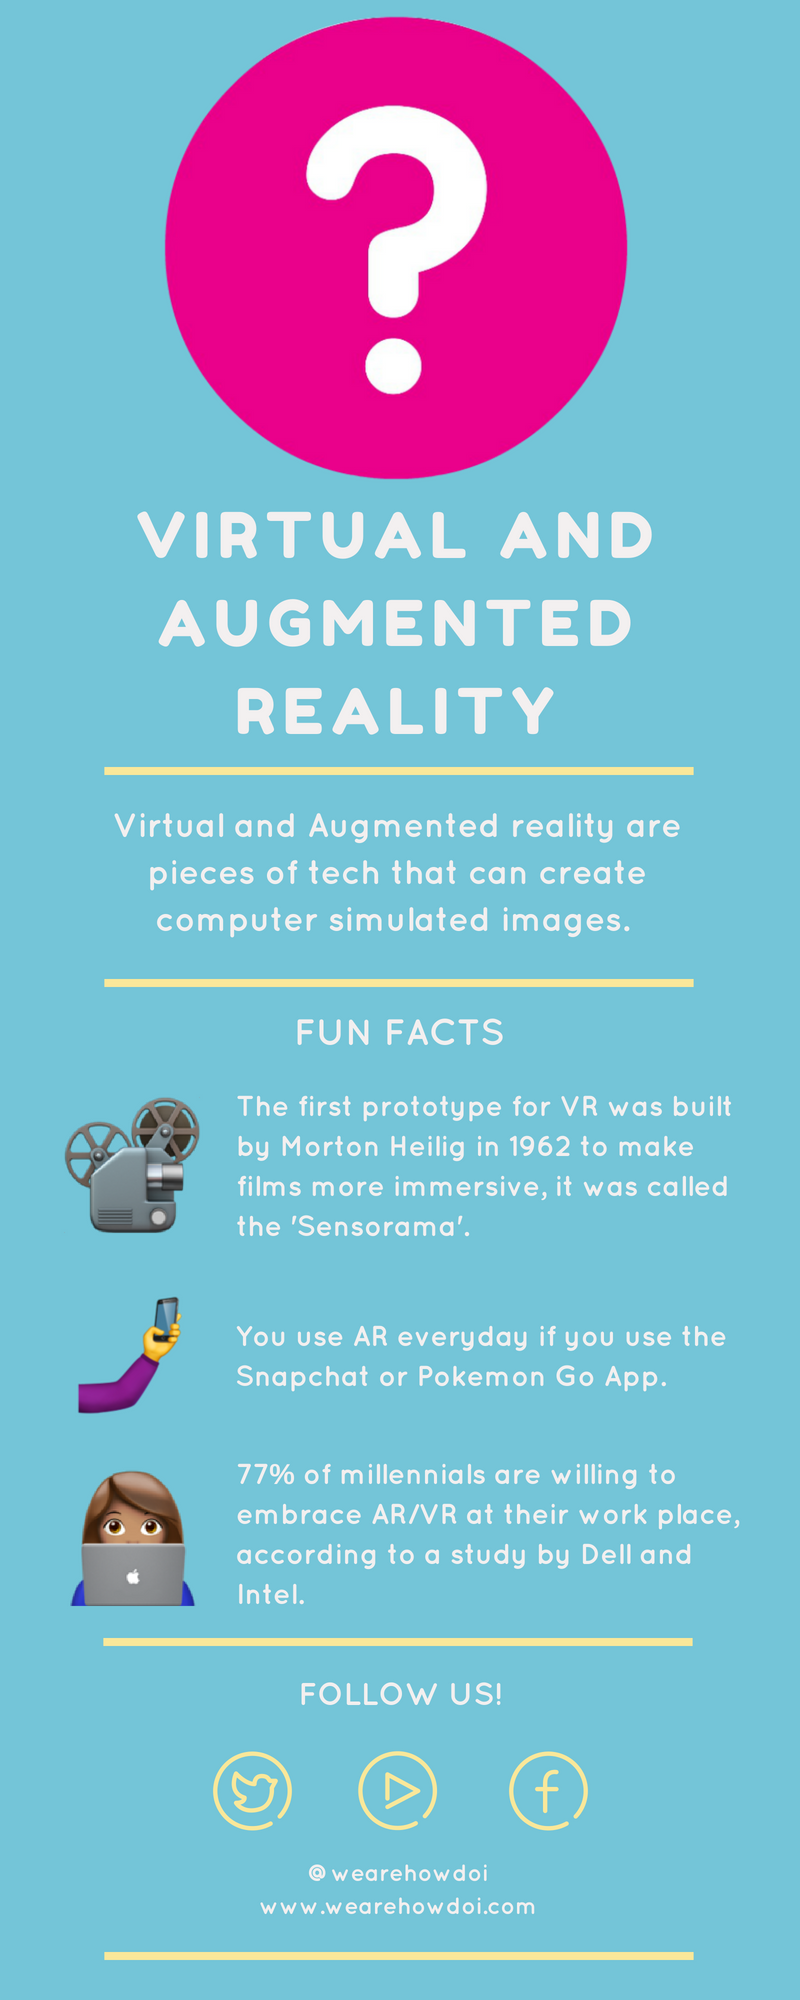 The infographic gives the following three fun facts: 1 - the first prototype for VR was built by Martin Heilig in 1962 to make films more immersive, it was called the sensorama. 2 - You use AR everyday if you use the Snapchat and Pokemon Go app. 3 - 77% of millennials are willing to embrace VR and AR in the workplace, according to a study by Dell and Intel.